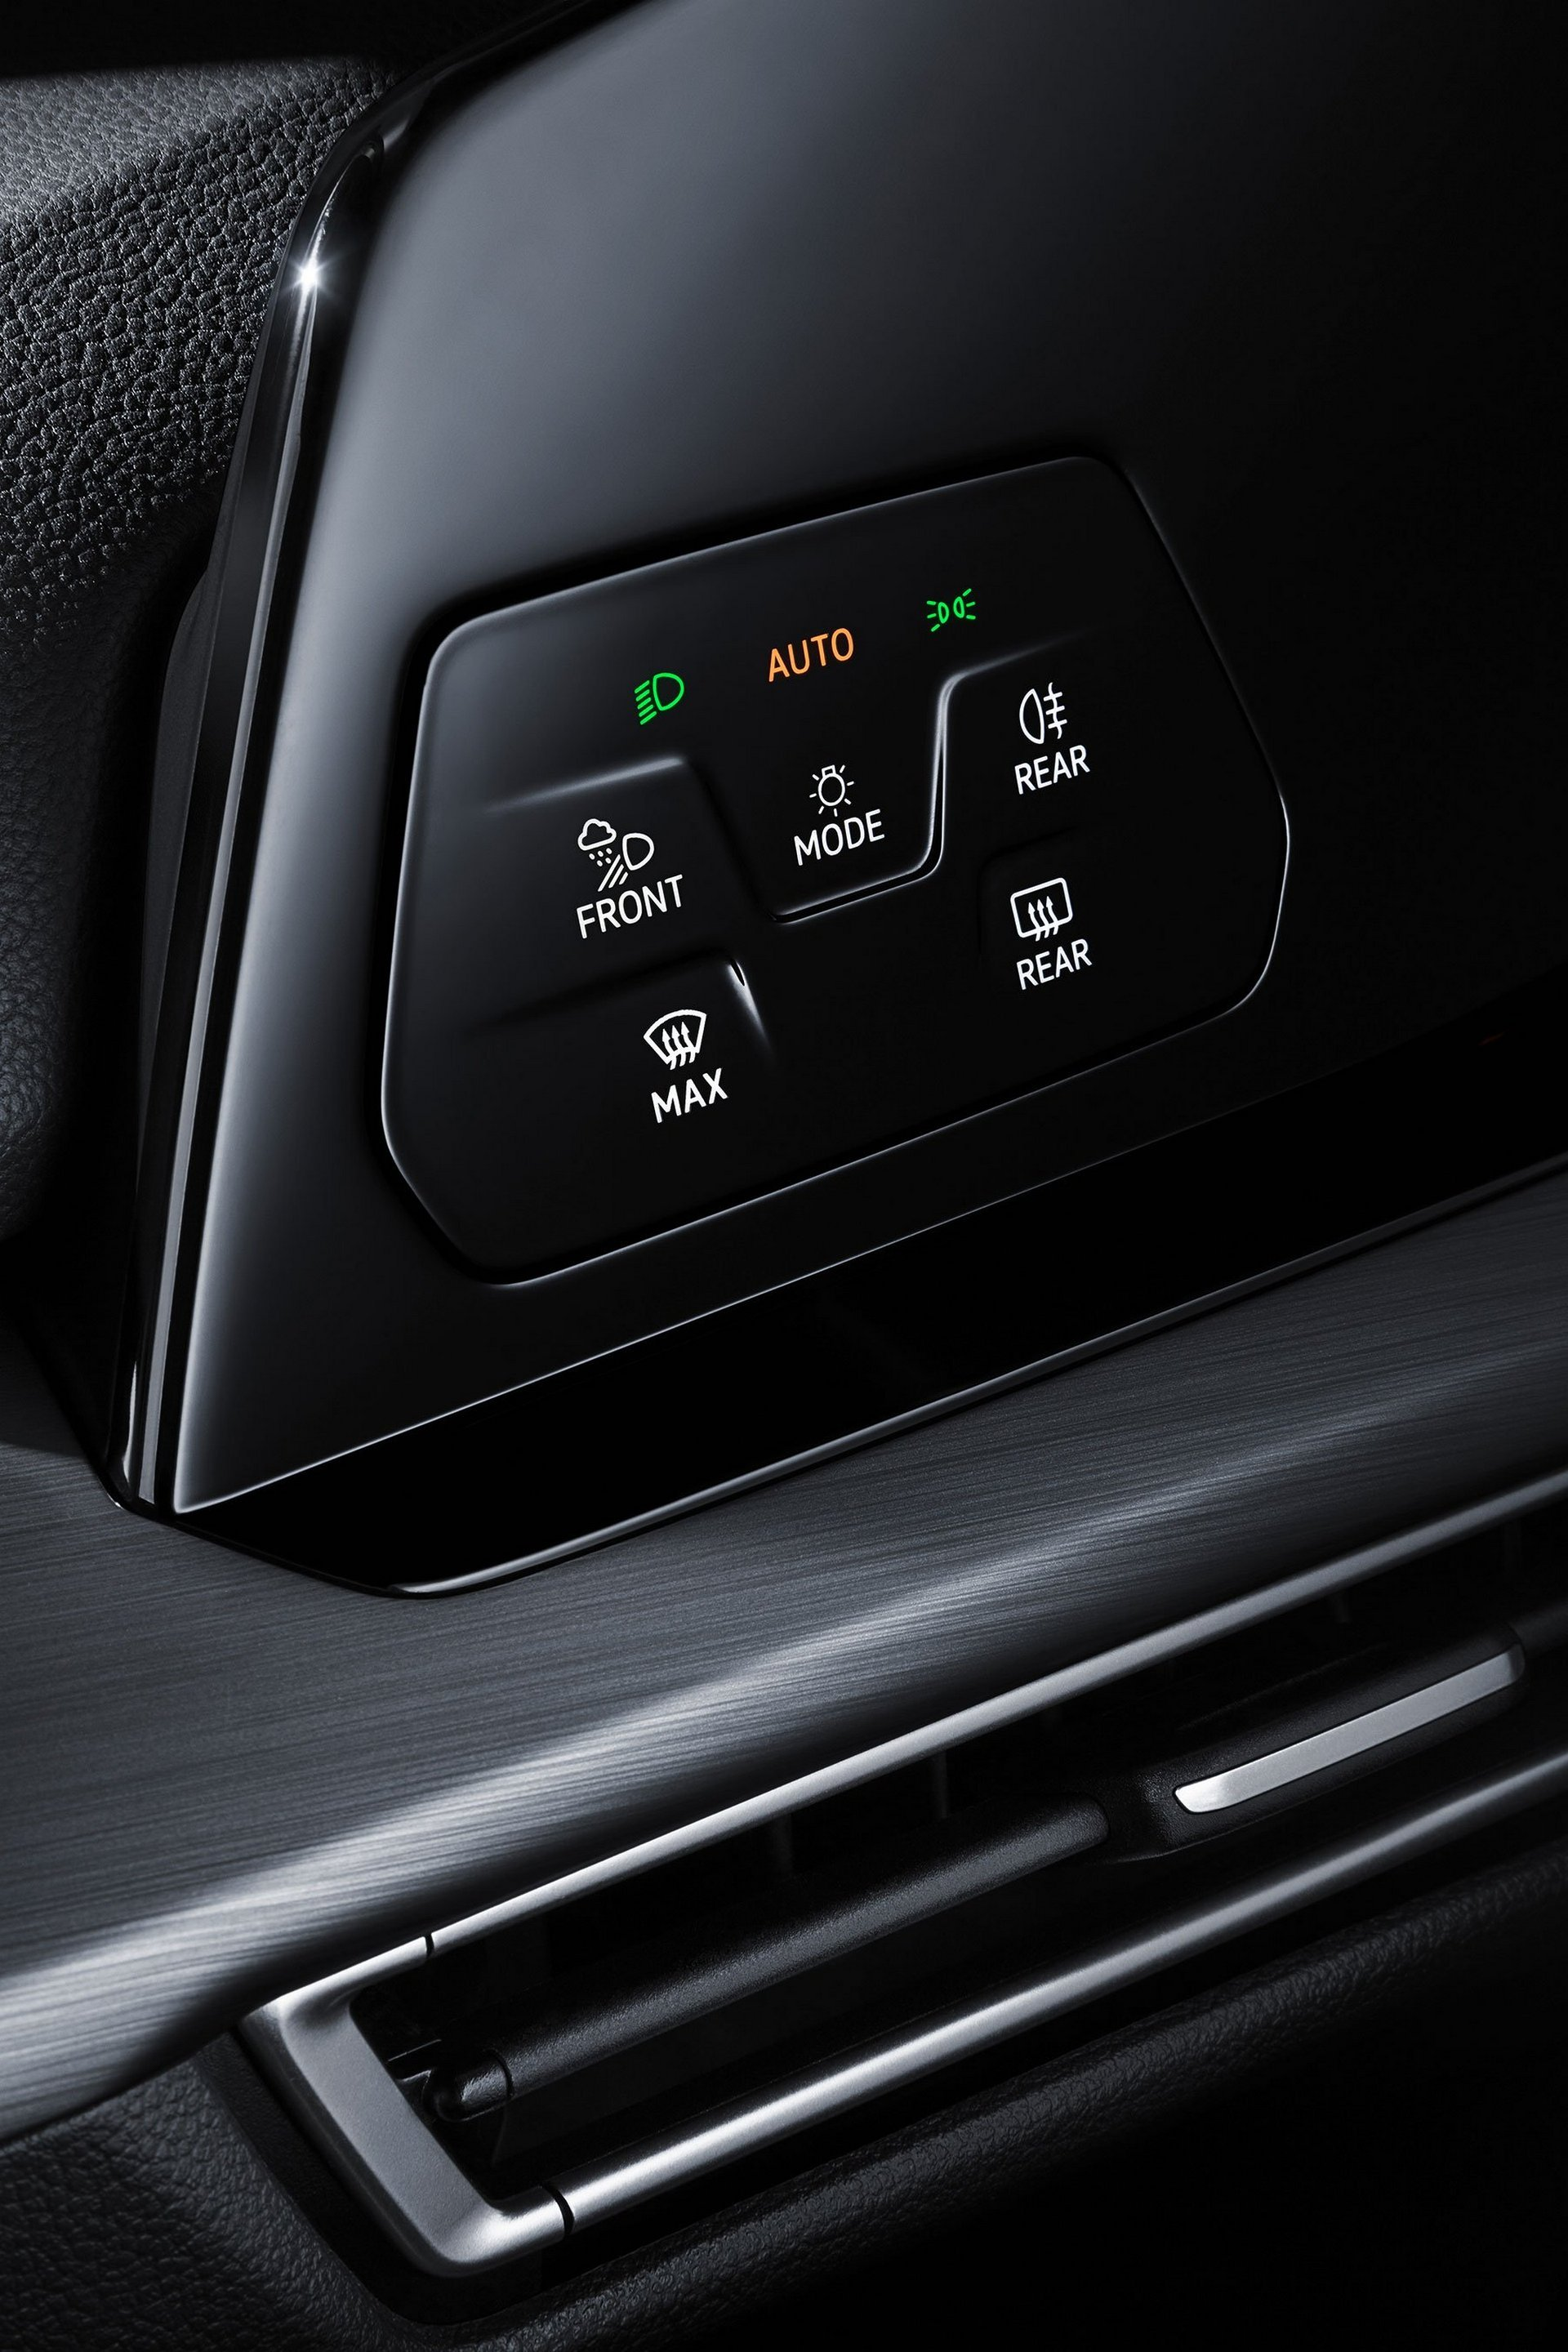 vw-mk8-golf-interior-touch-buttons